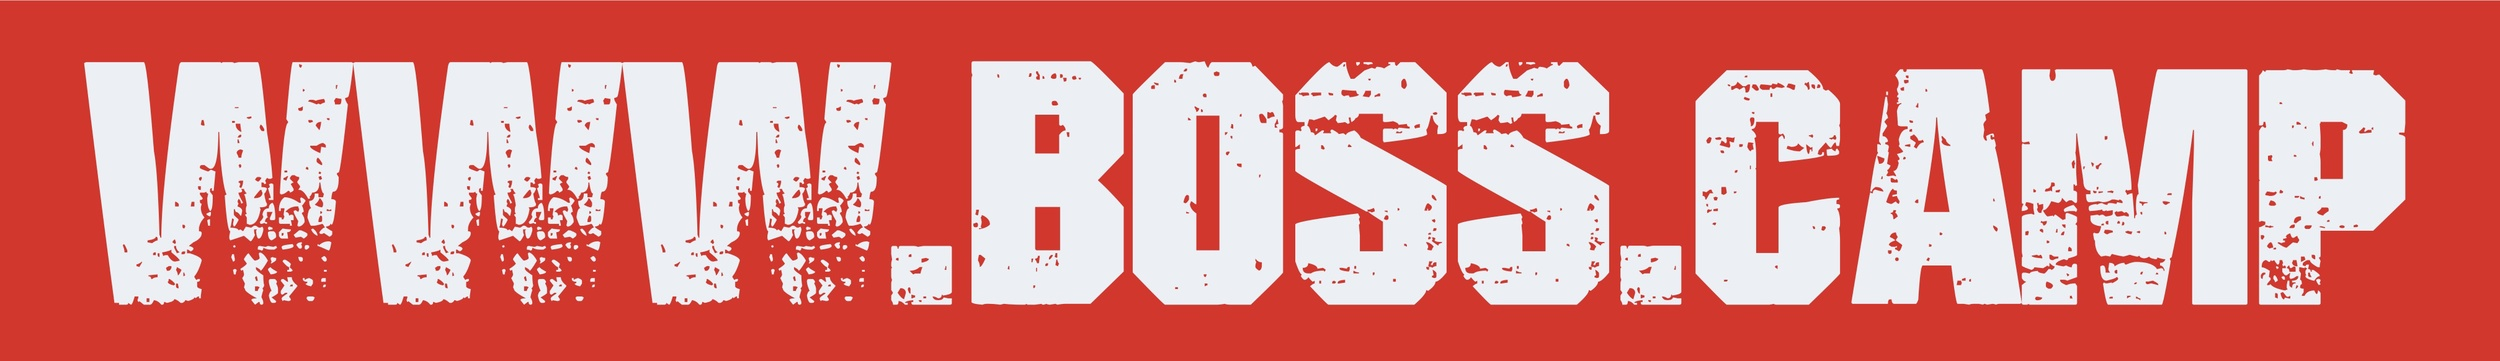 Find out how to make managing easy in just an hour a week at www.boss.camp Jpeg